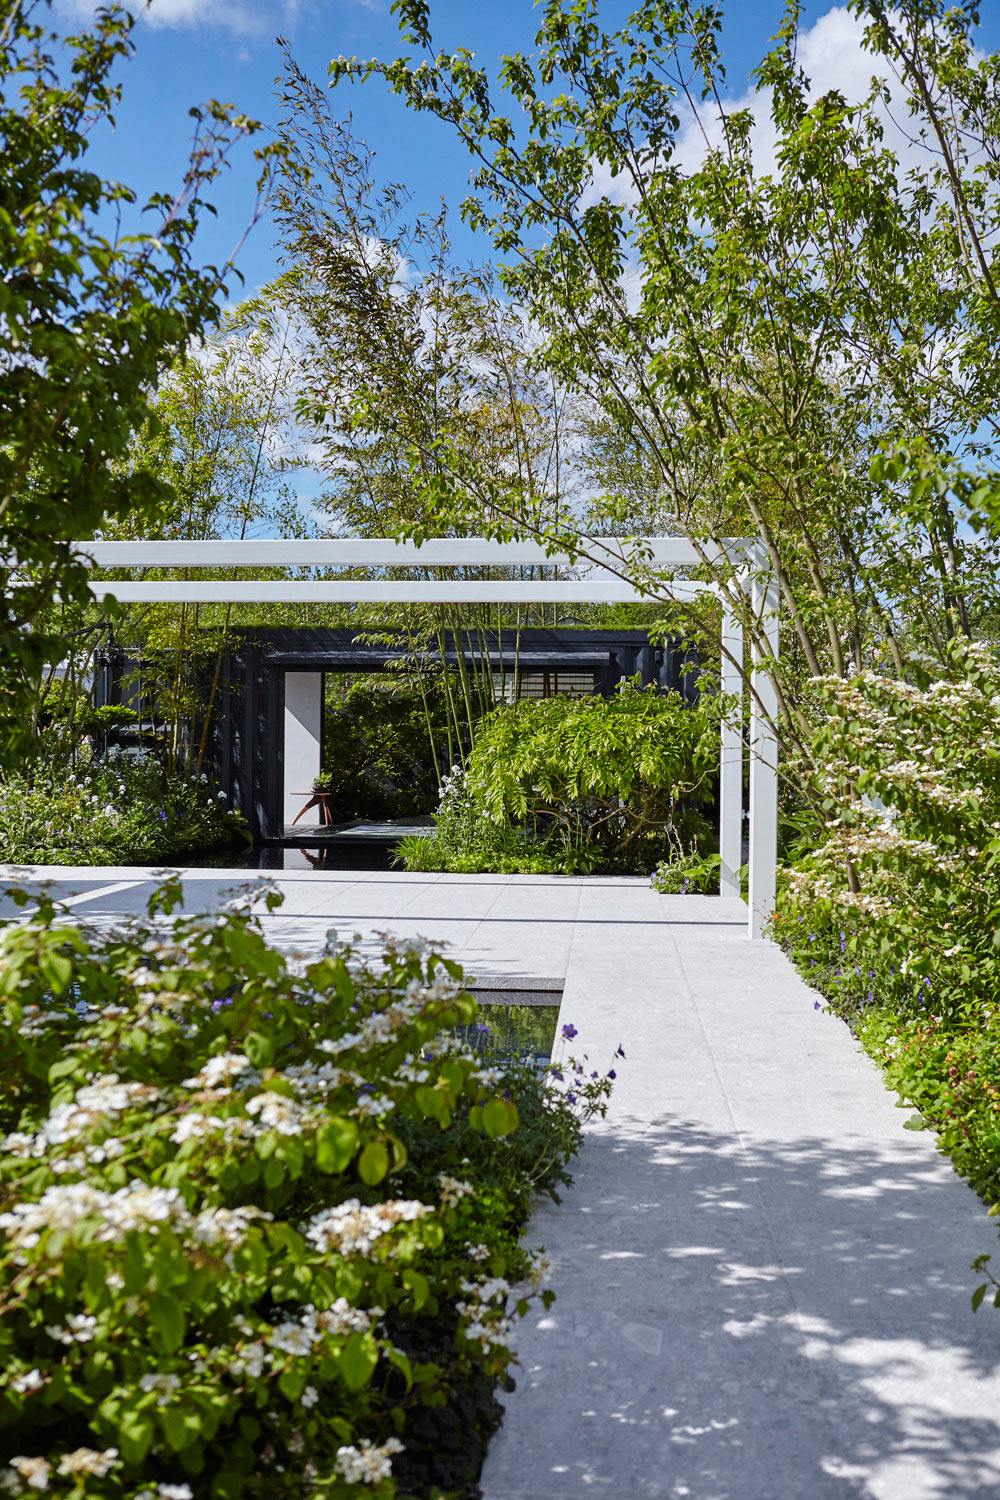 Architectural Structures At The Chelsea Flower Show